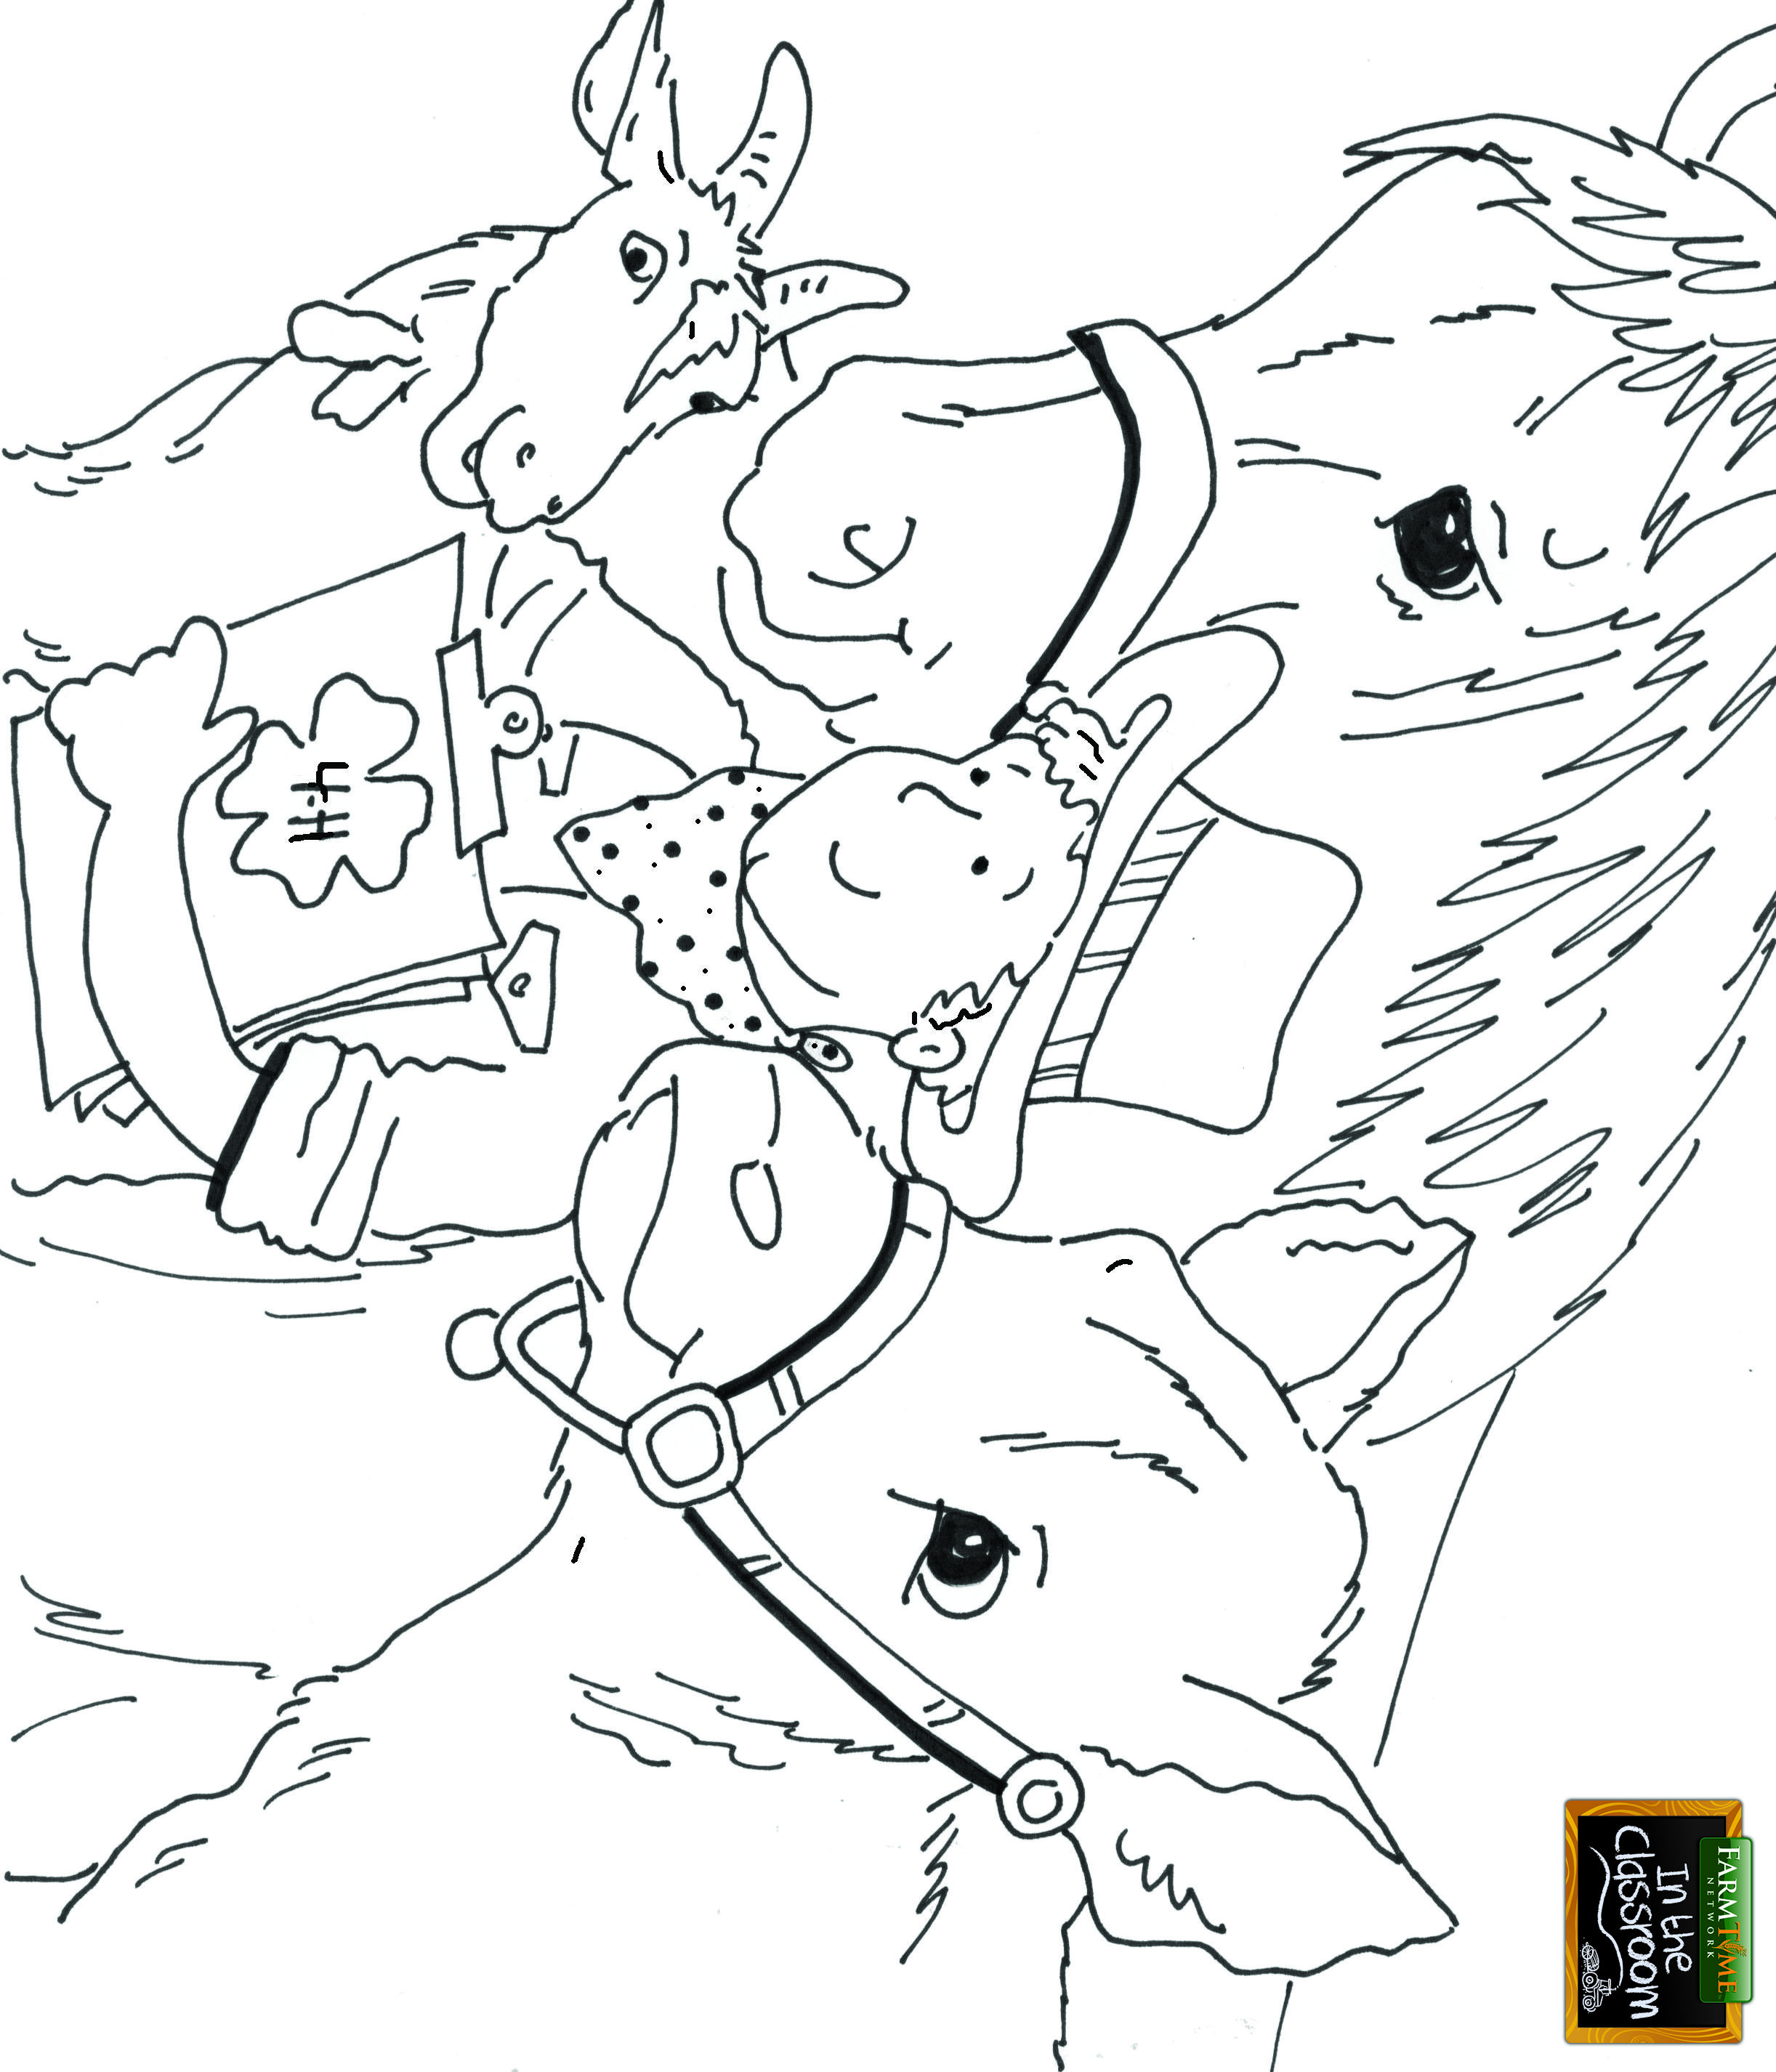 www.FarmTimeClassroom.com Free #Coloring Page #4h #horses #cows ...